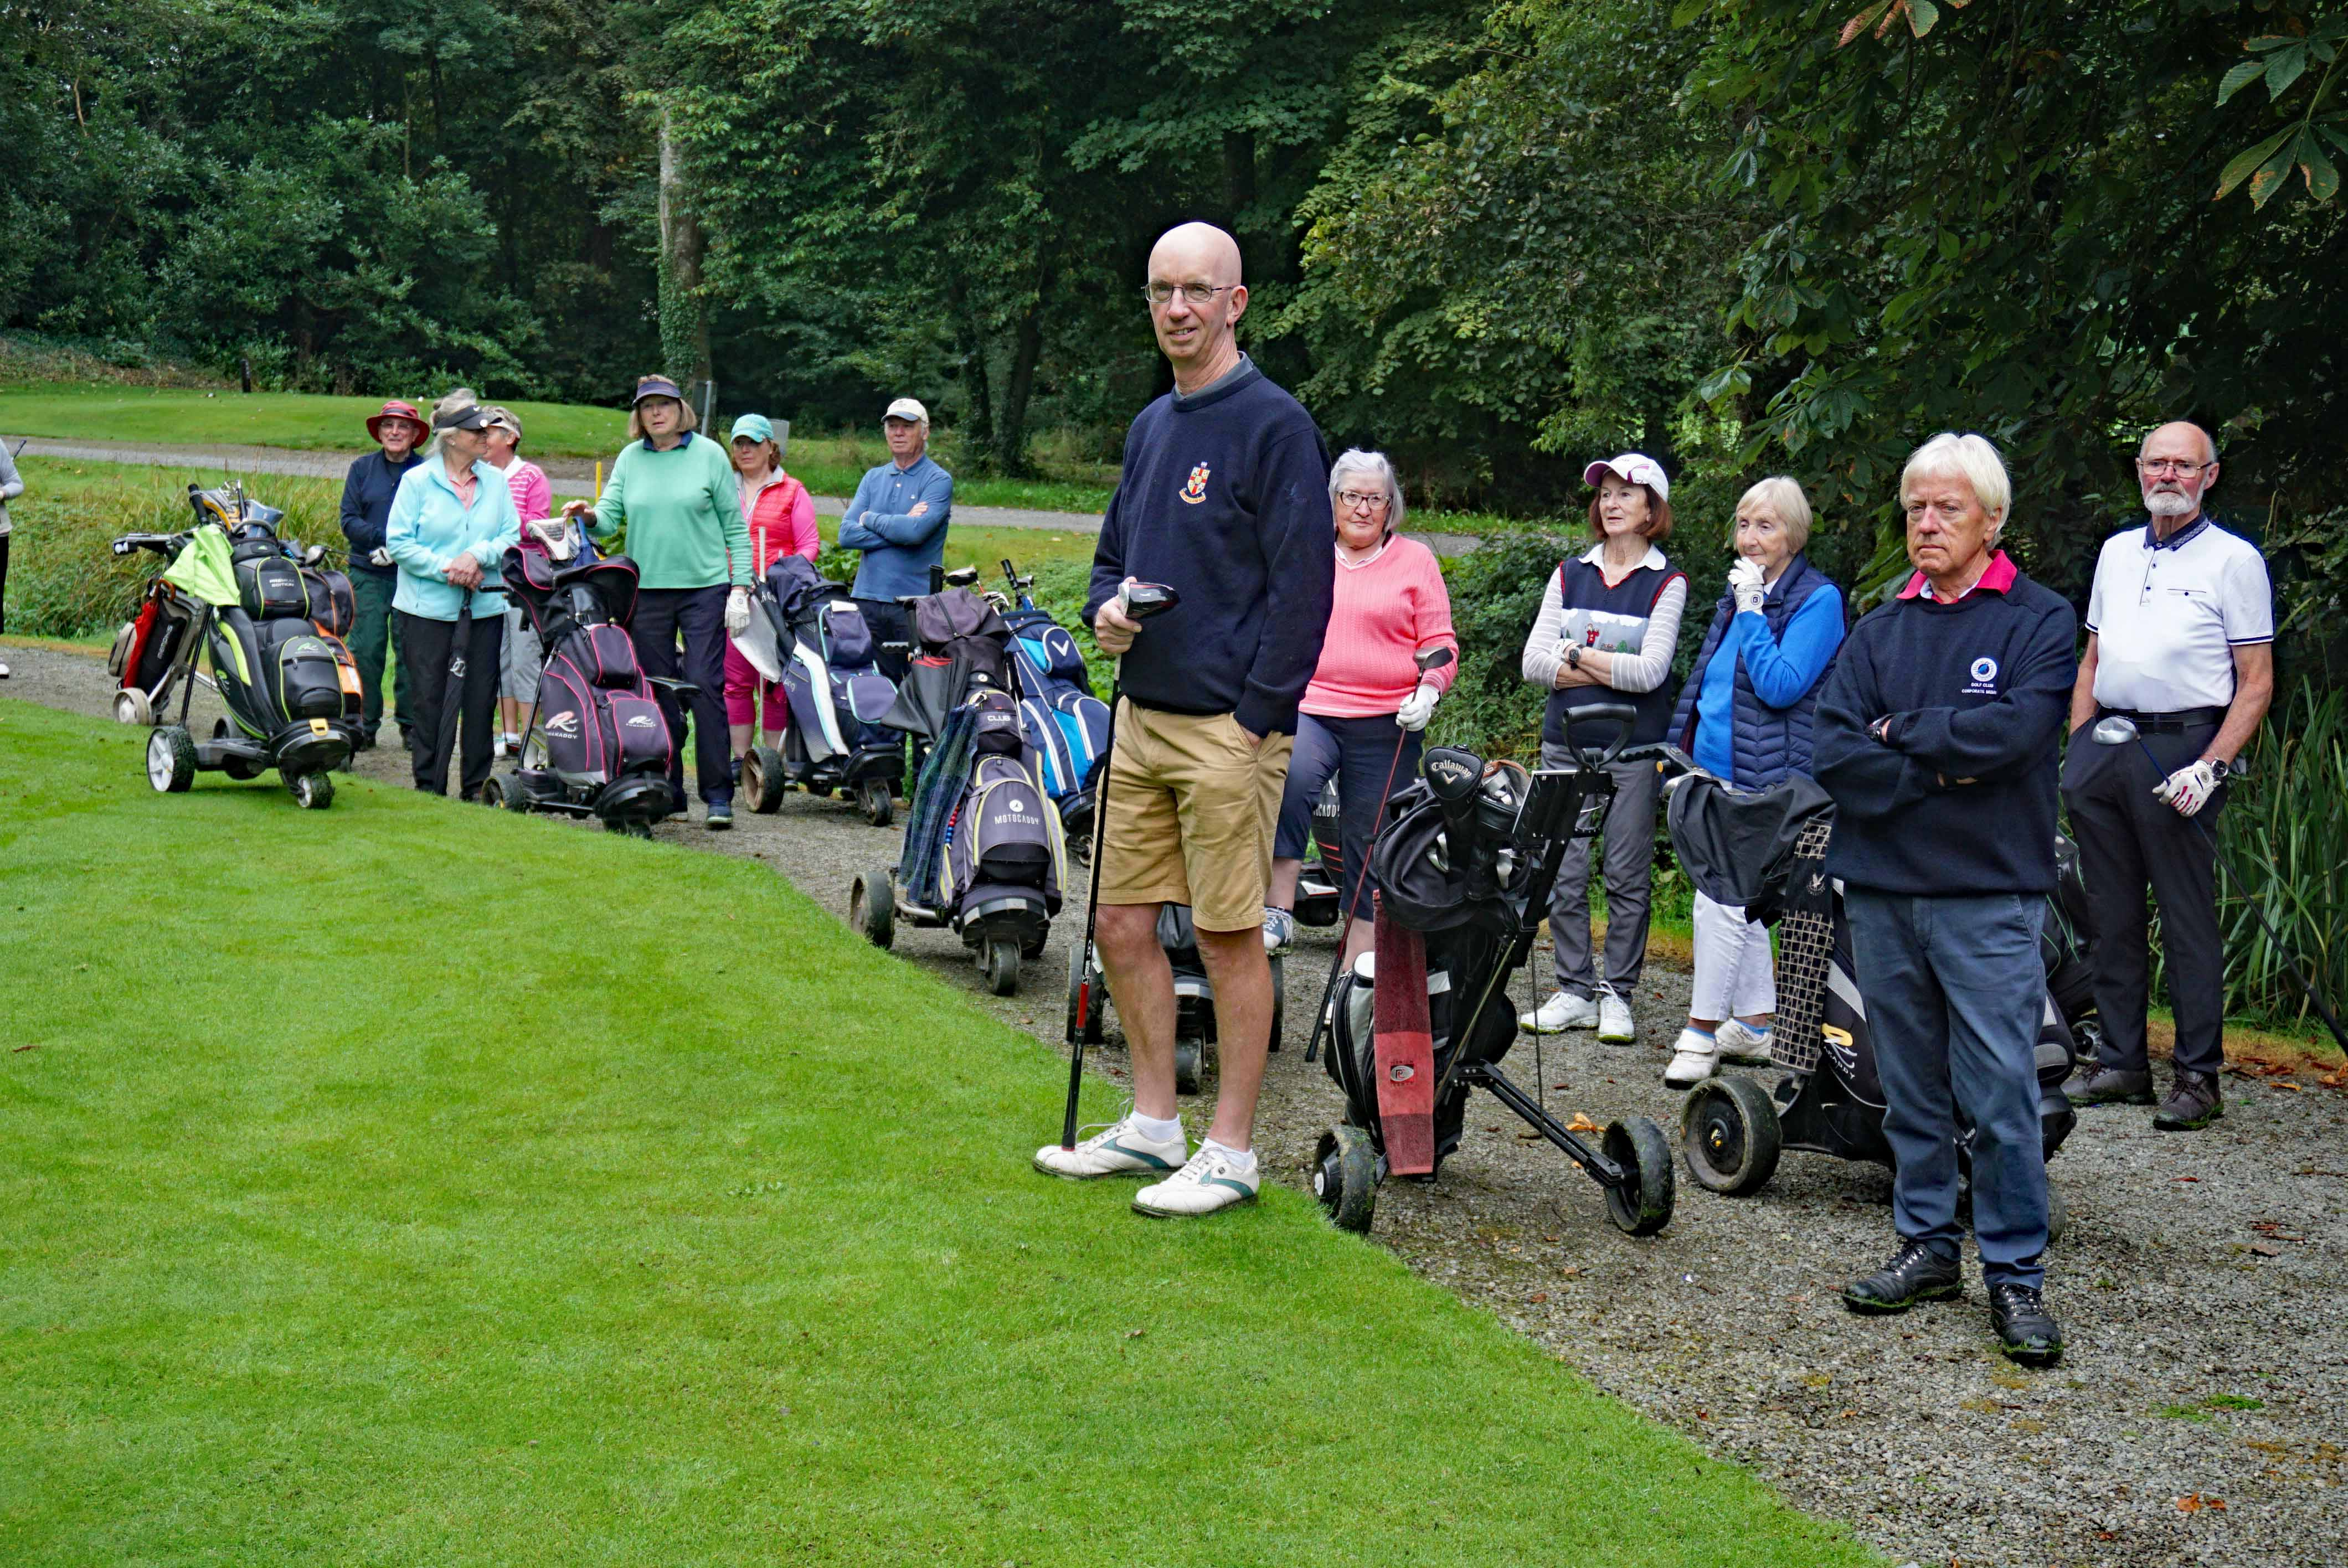 The Golf Group